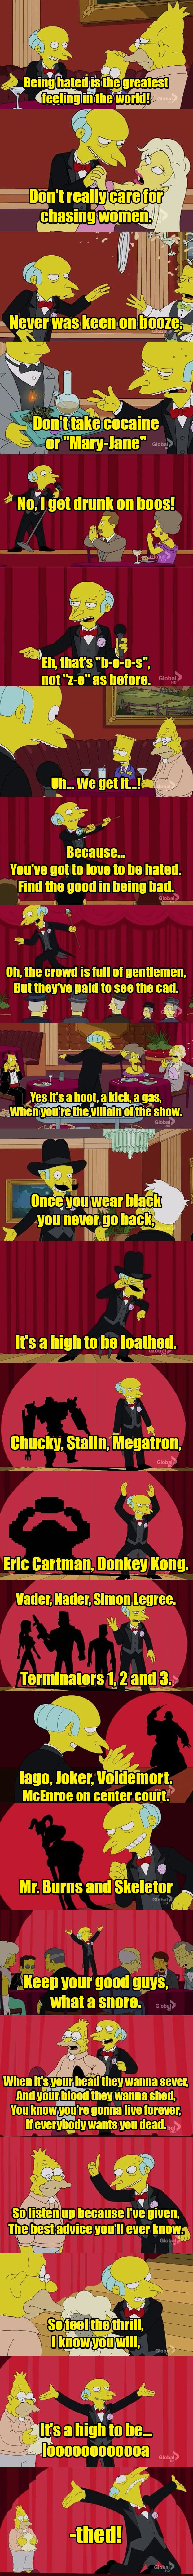 Mr. Burns - High To Be Loathed